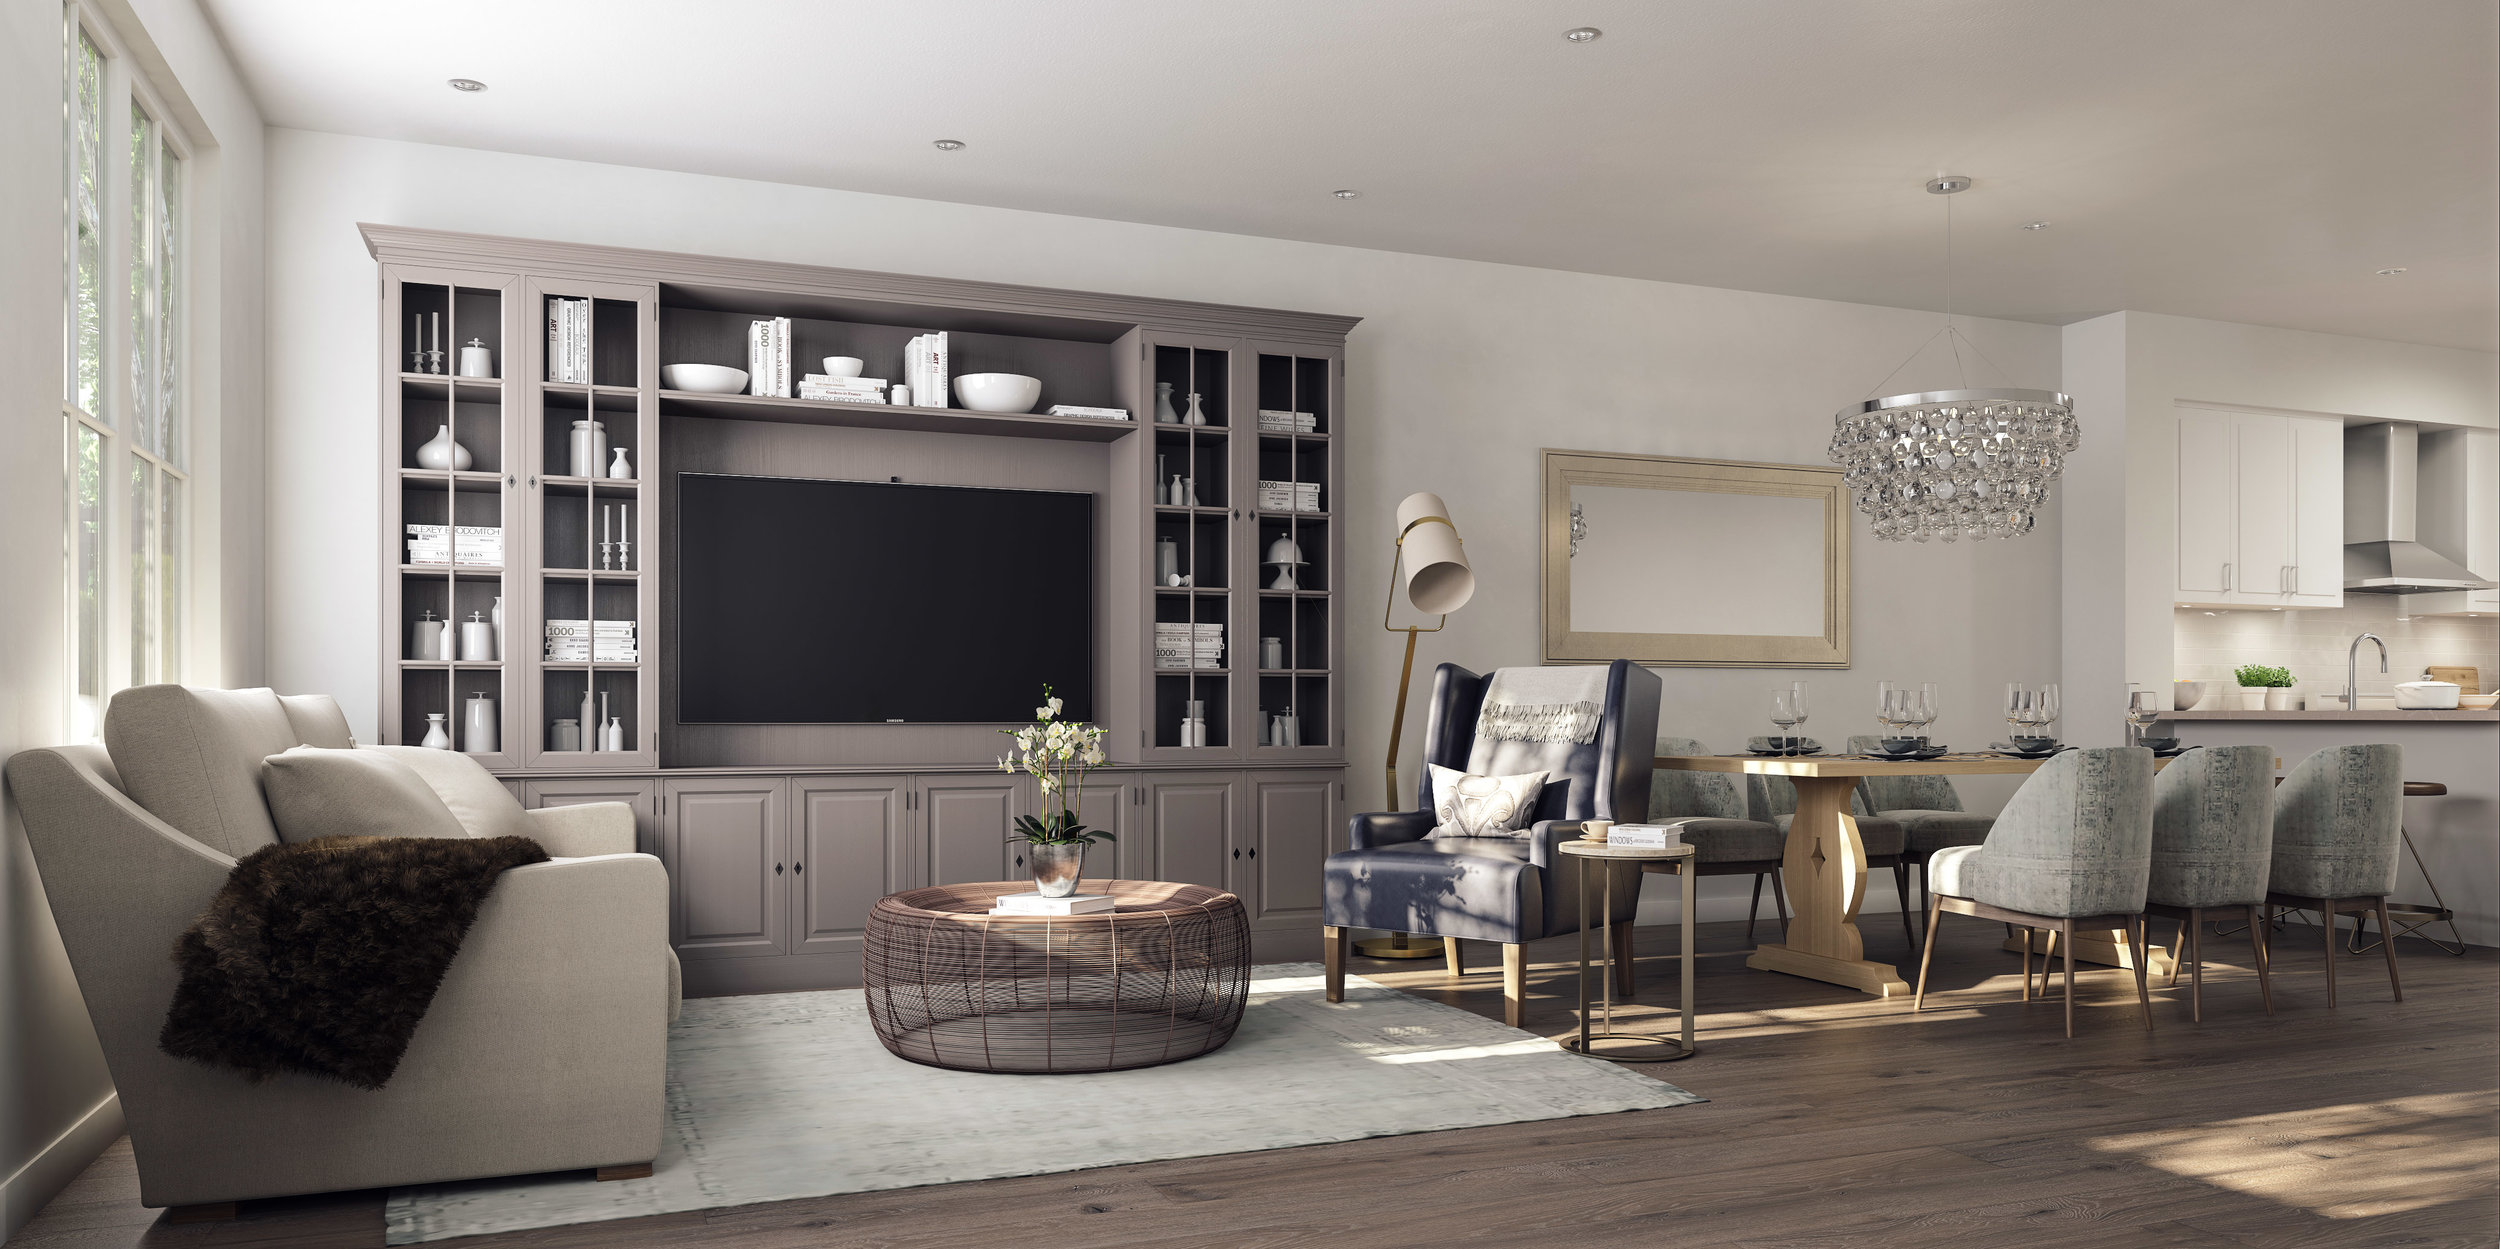 shaughnessy_int_livingroom_Highres-May5.jpg